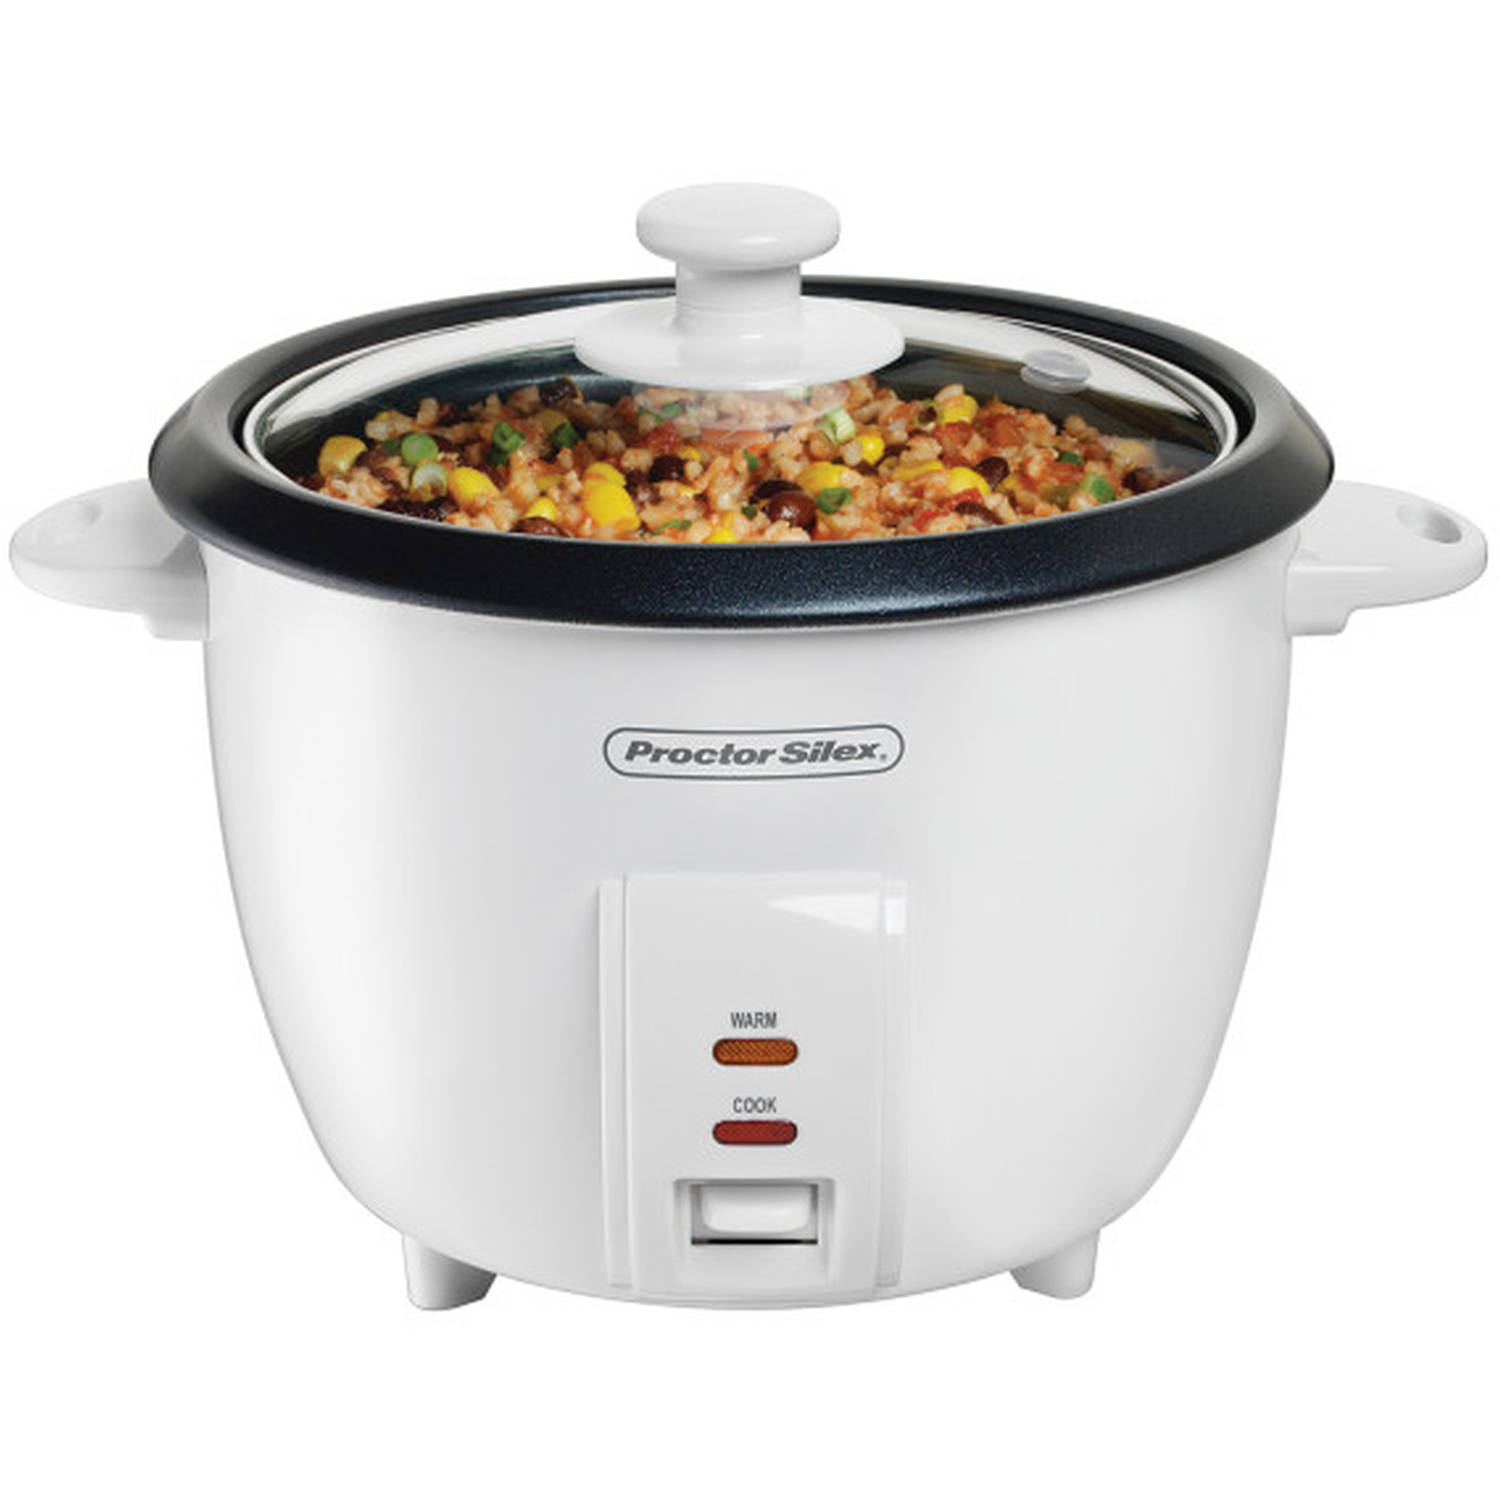 Proctor Silex 10 Cup Rice Cooker | Model# 37533NR